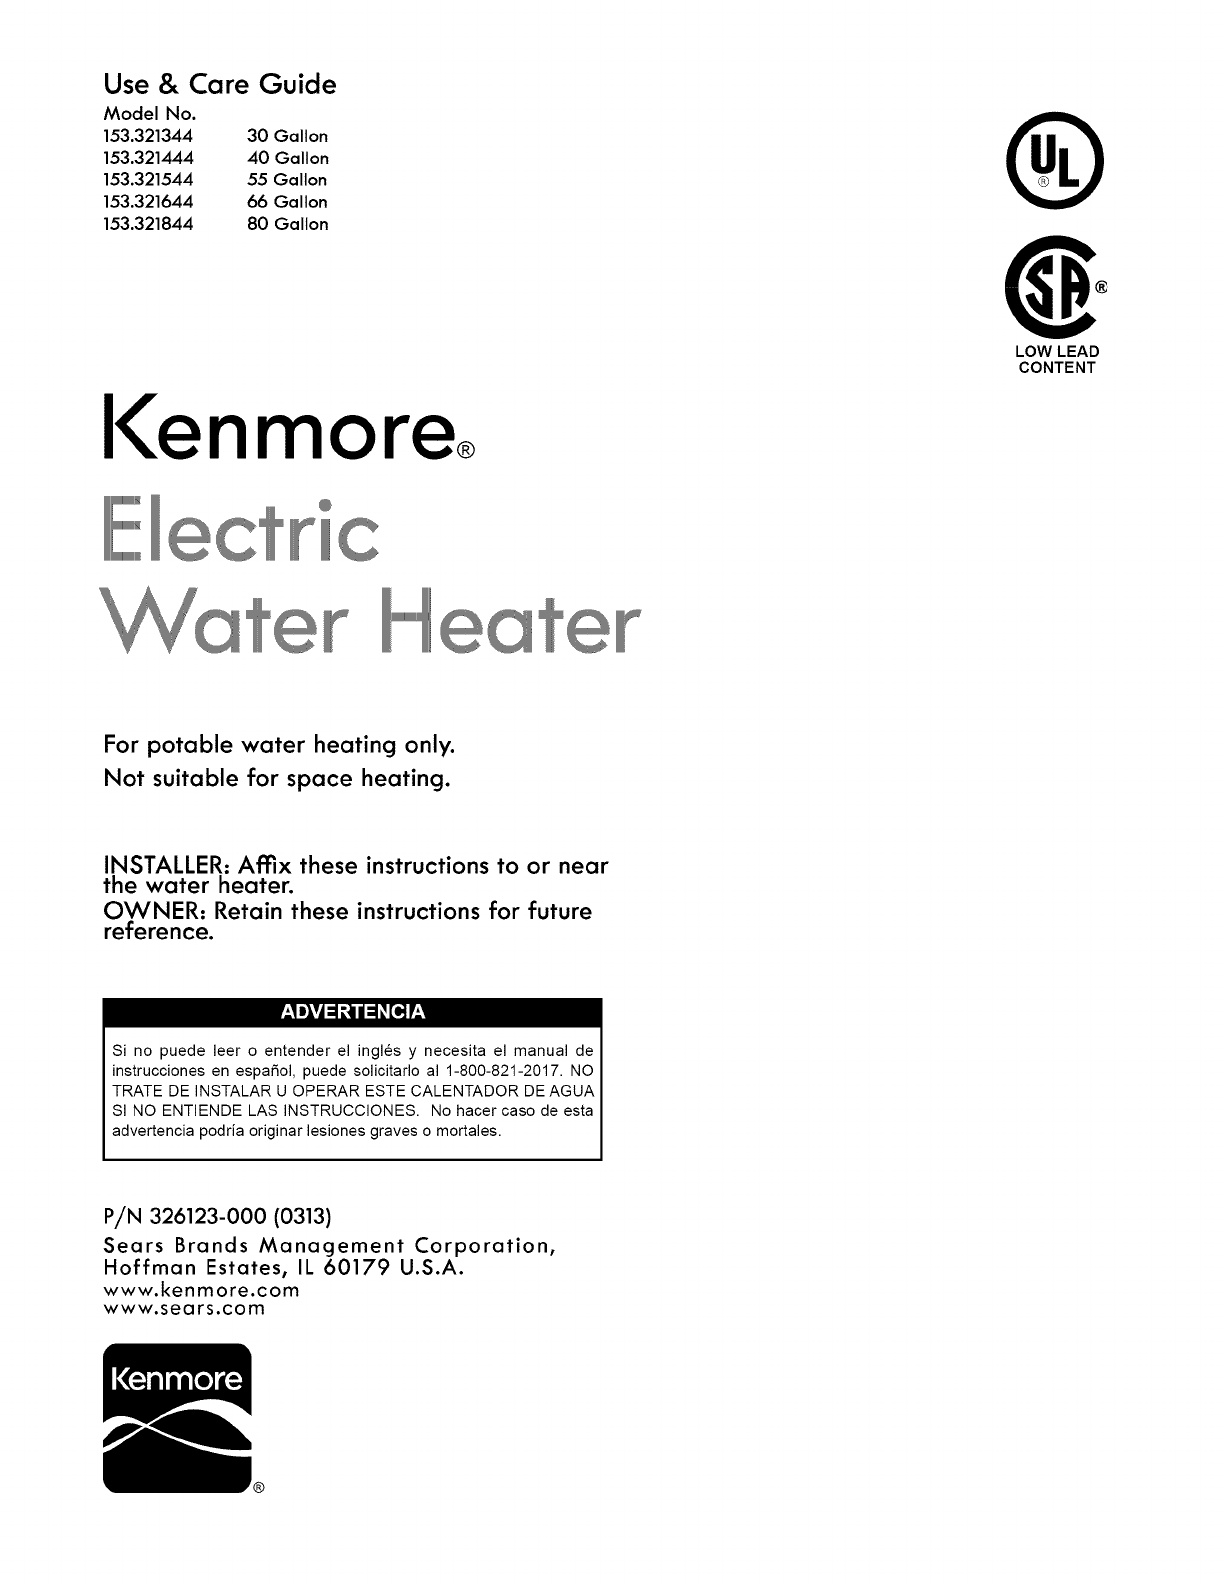 Kenmore 153321344 user manual electric water heater manuals and kenmore 153321344 user manual electric water heater manuals and guides 1310199l ccuart Image collections